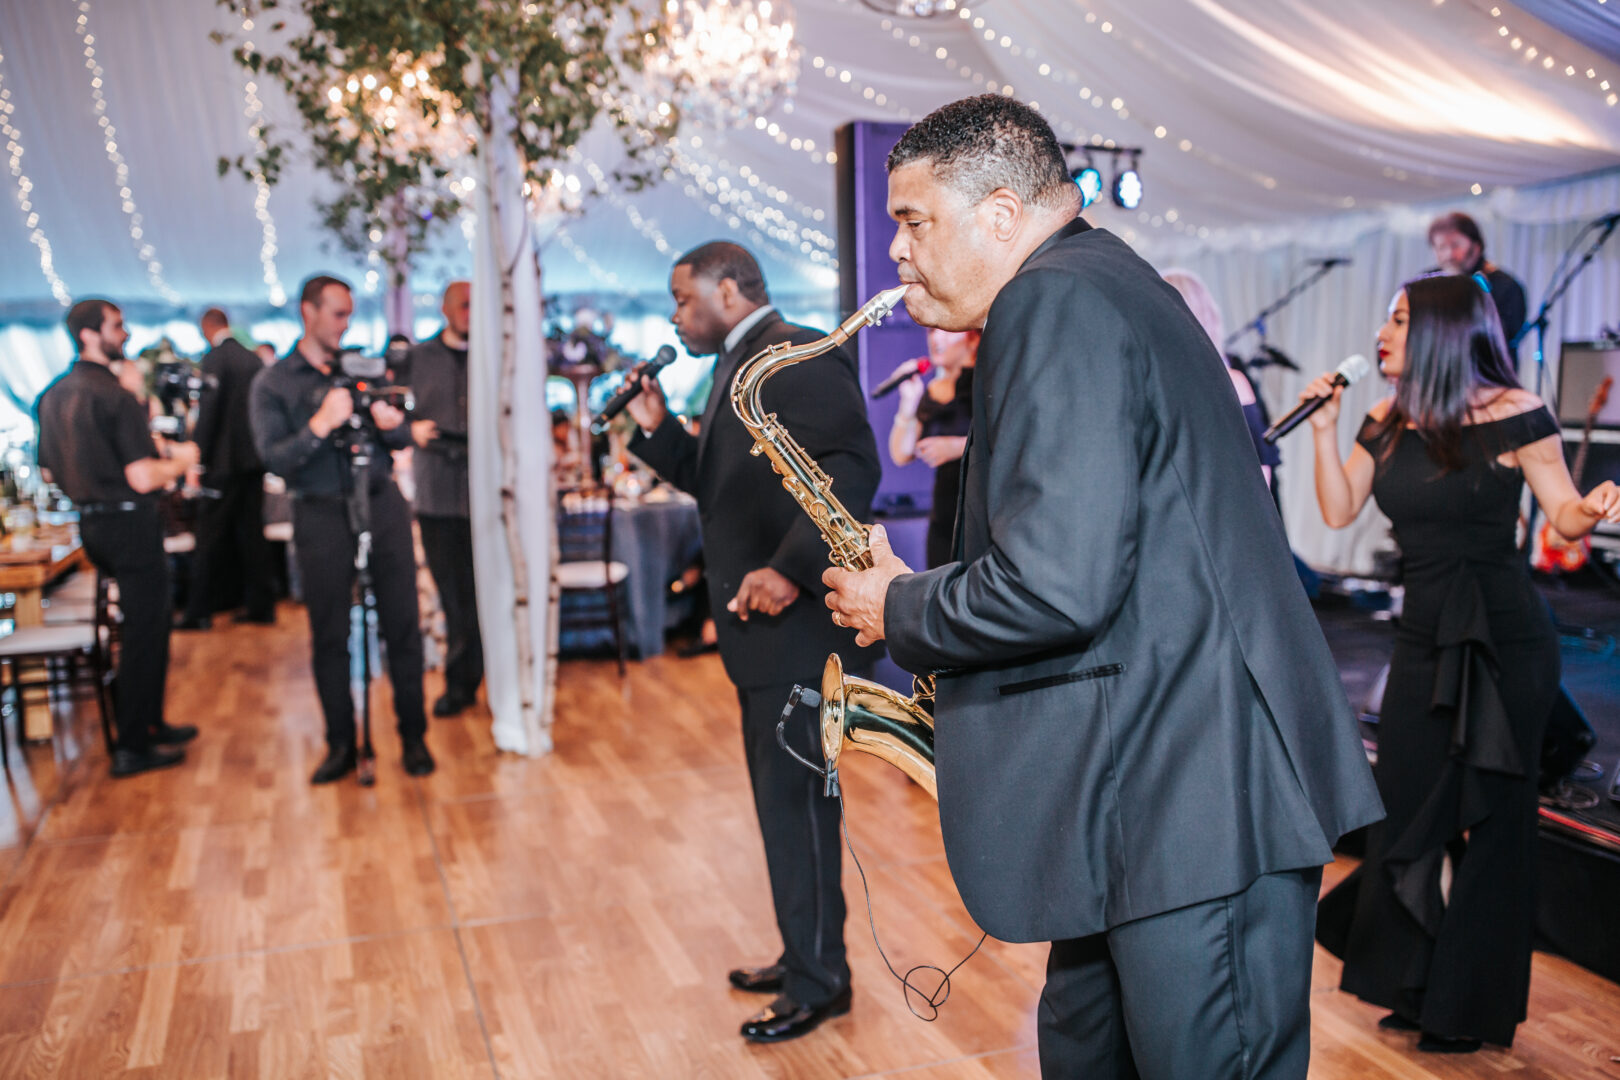 Man playing saxophone in wedding band